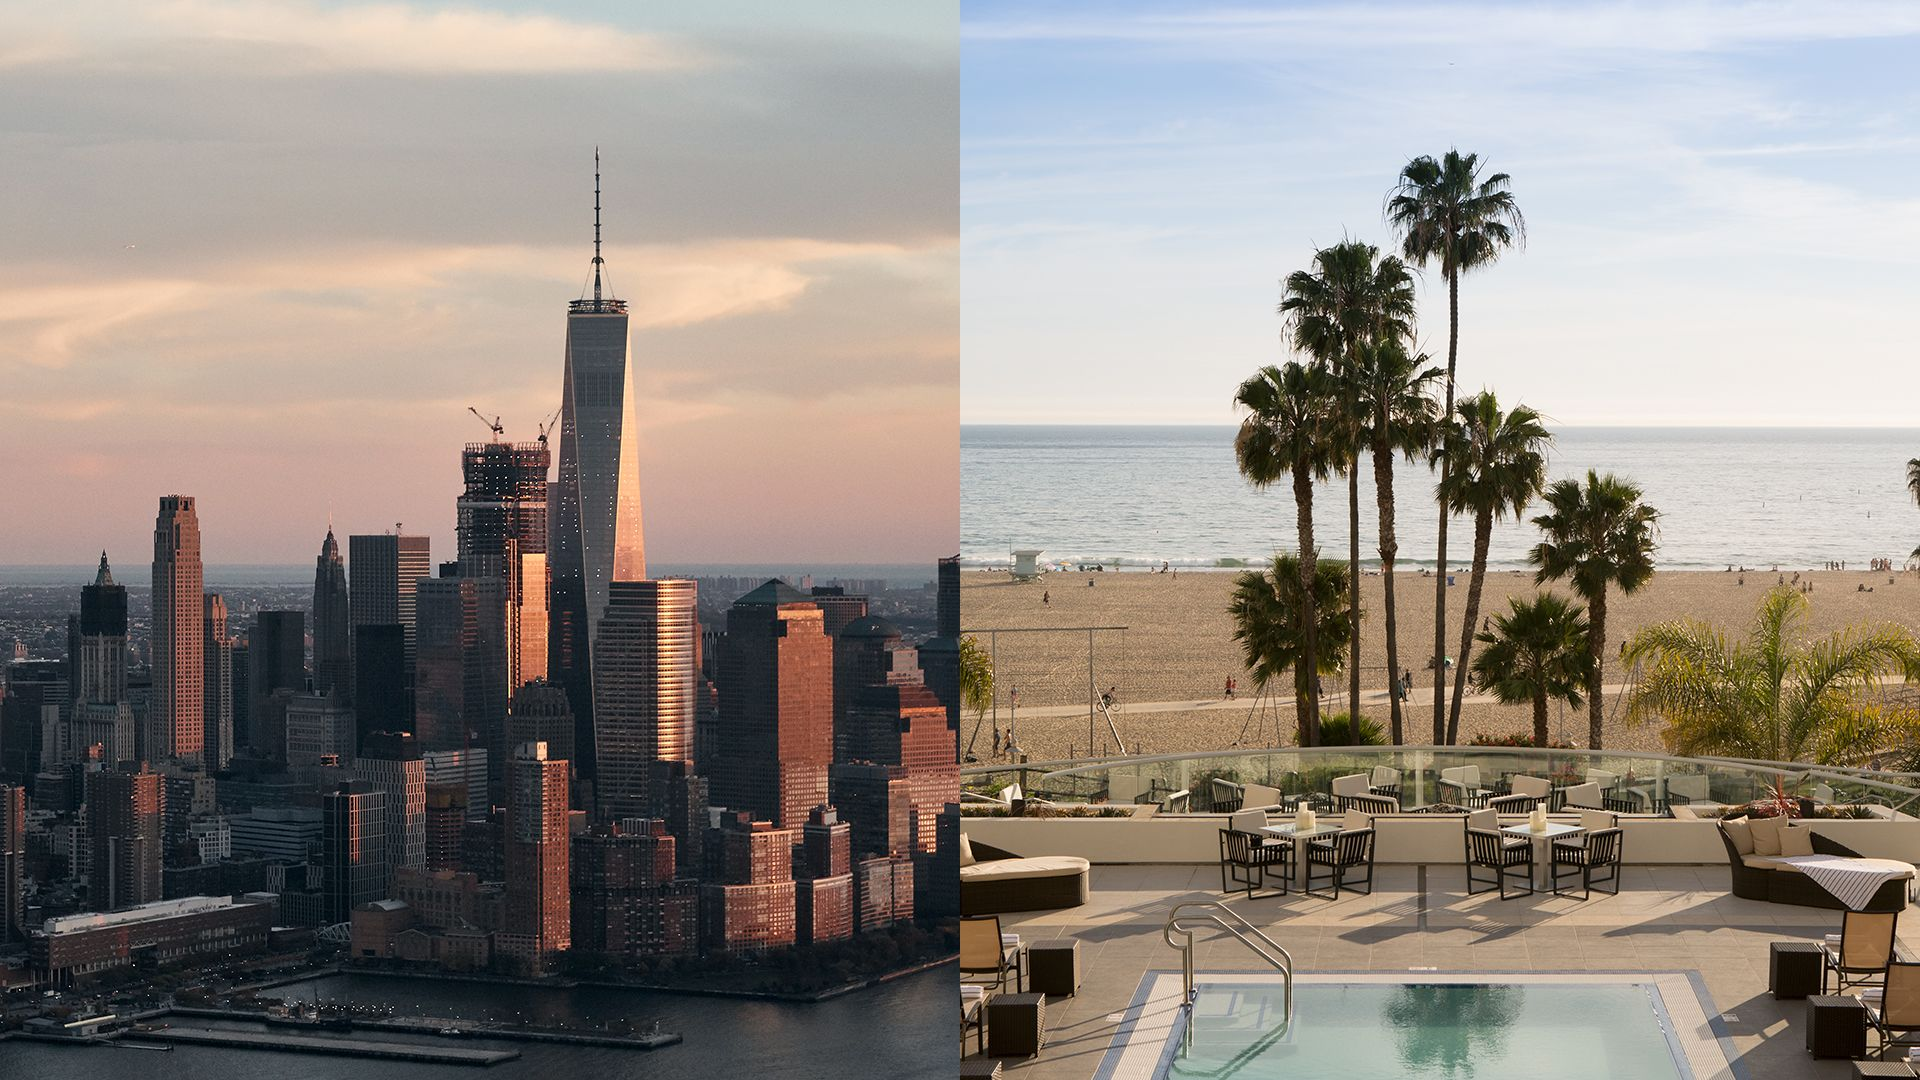 <strong> Skylines or Shorelines? | Big city dreams or resort Rejuvenation? Wander Your Way.</strong>|A Wonderful|Place to Wander|Let's Go